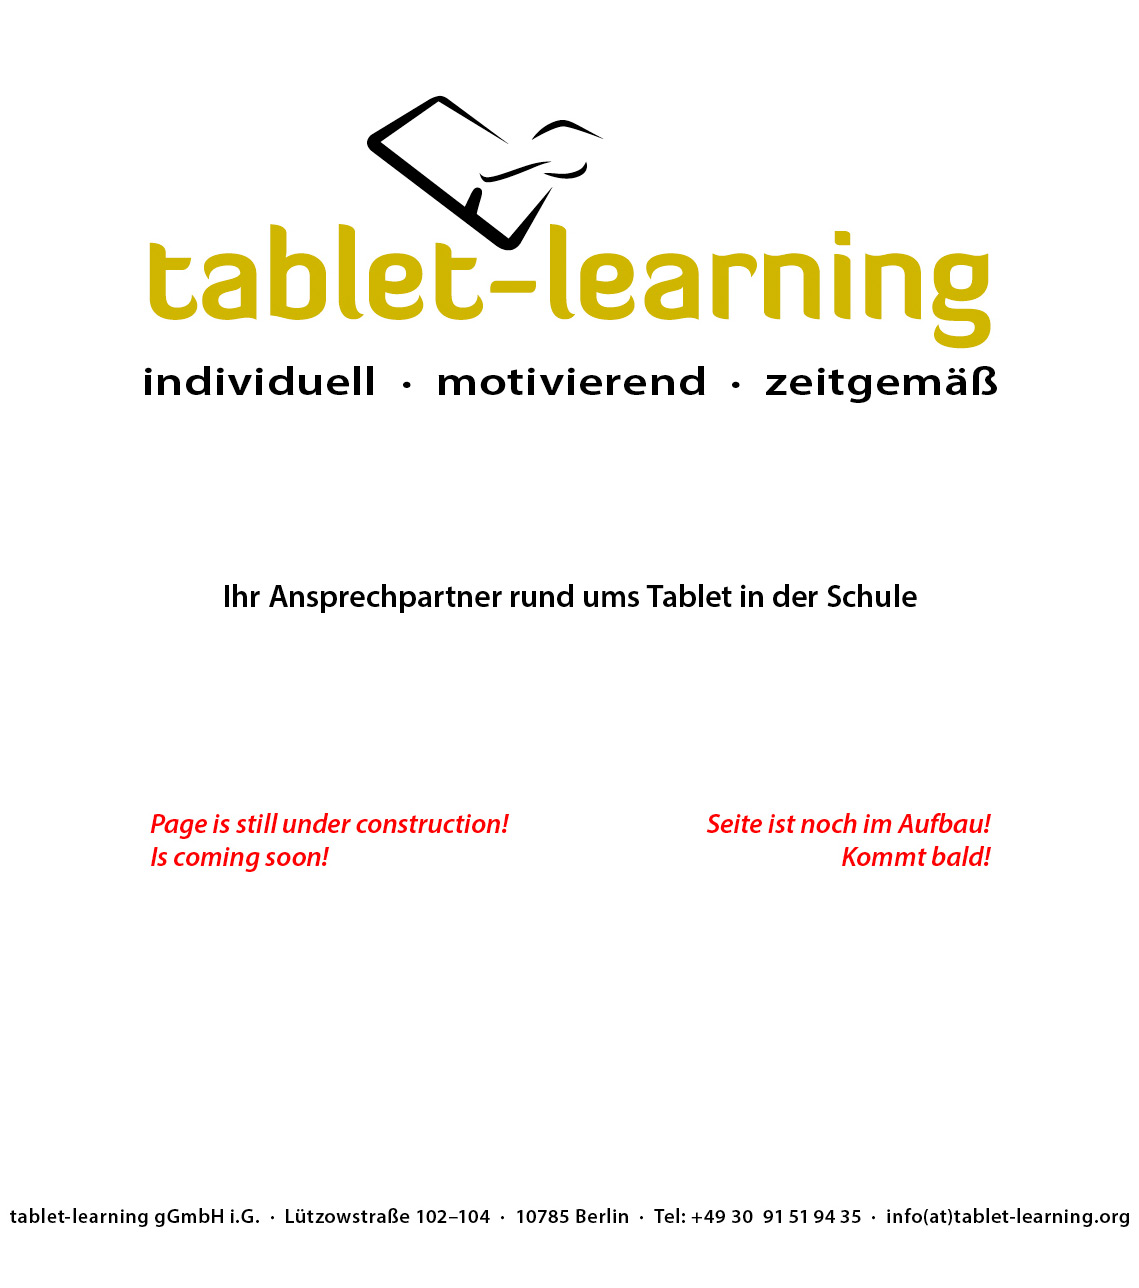 tablet-learning